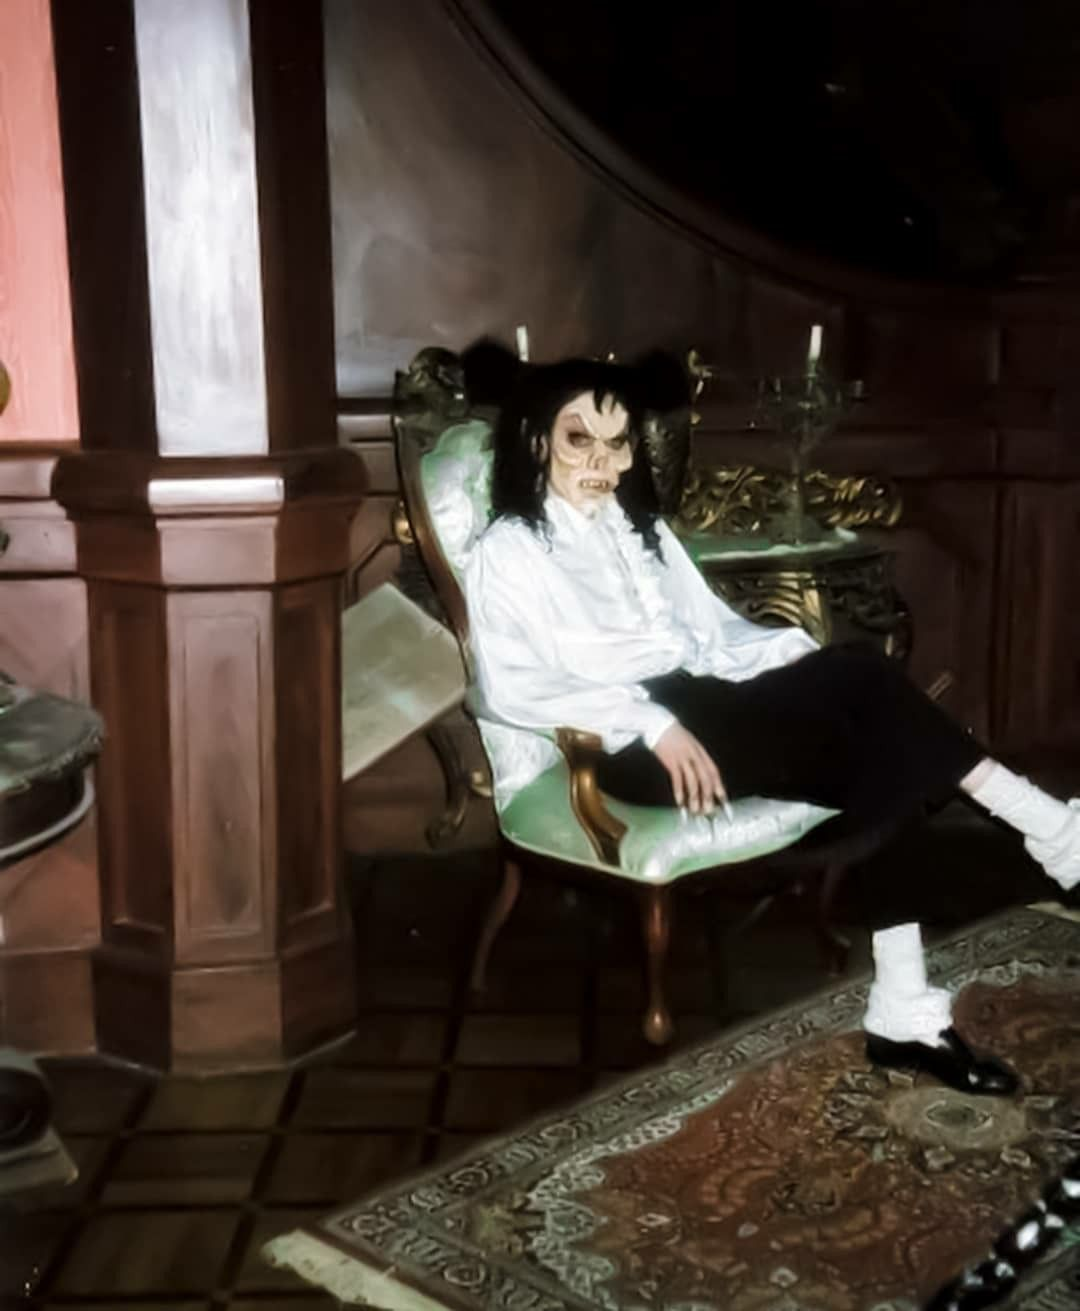 Michael Jackson Rtt If Anyone Is Wondering Why He S Sitting In A Chair It S Michael Jackson Michael Jackson Dance Michael Jackson Pics